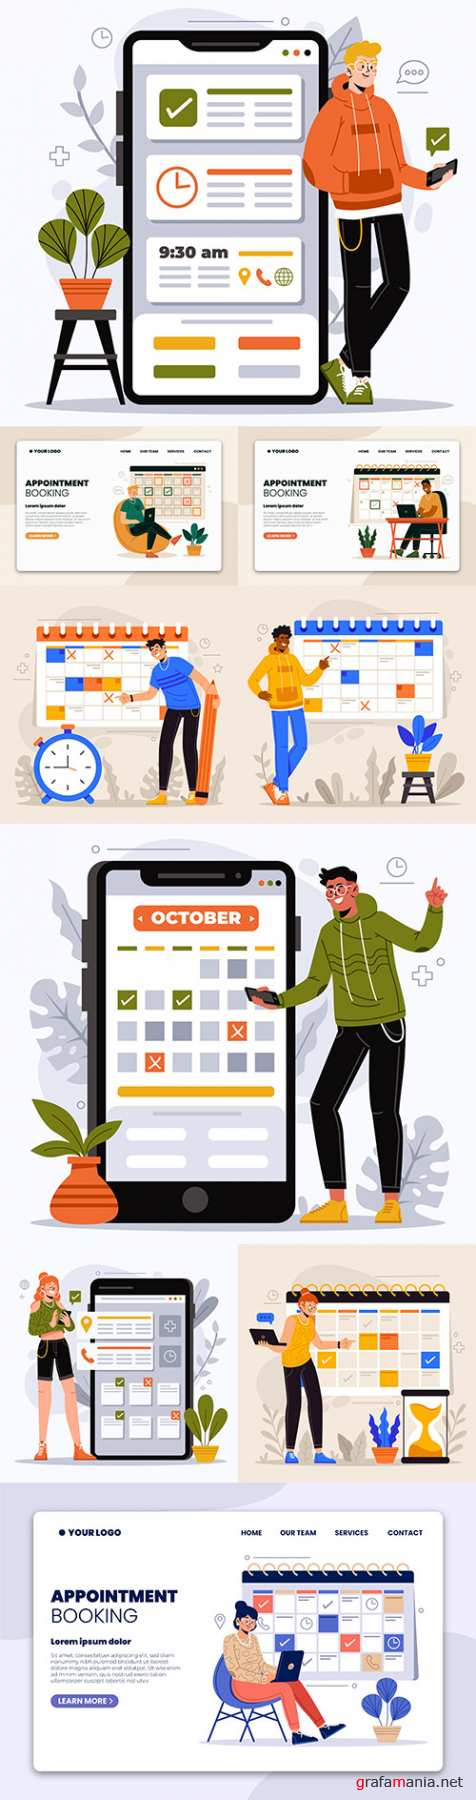 People booking an appointment entry with calendar concept